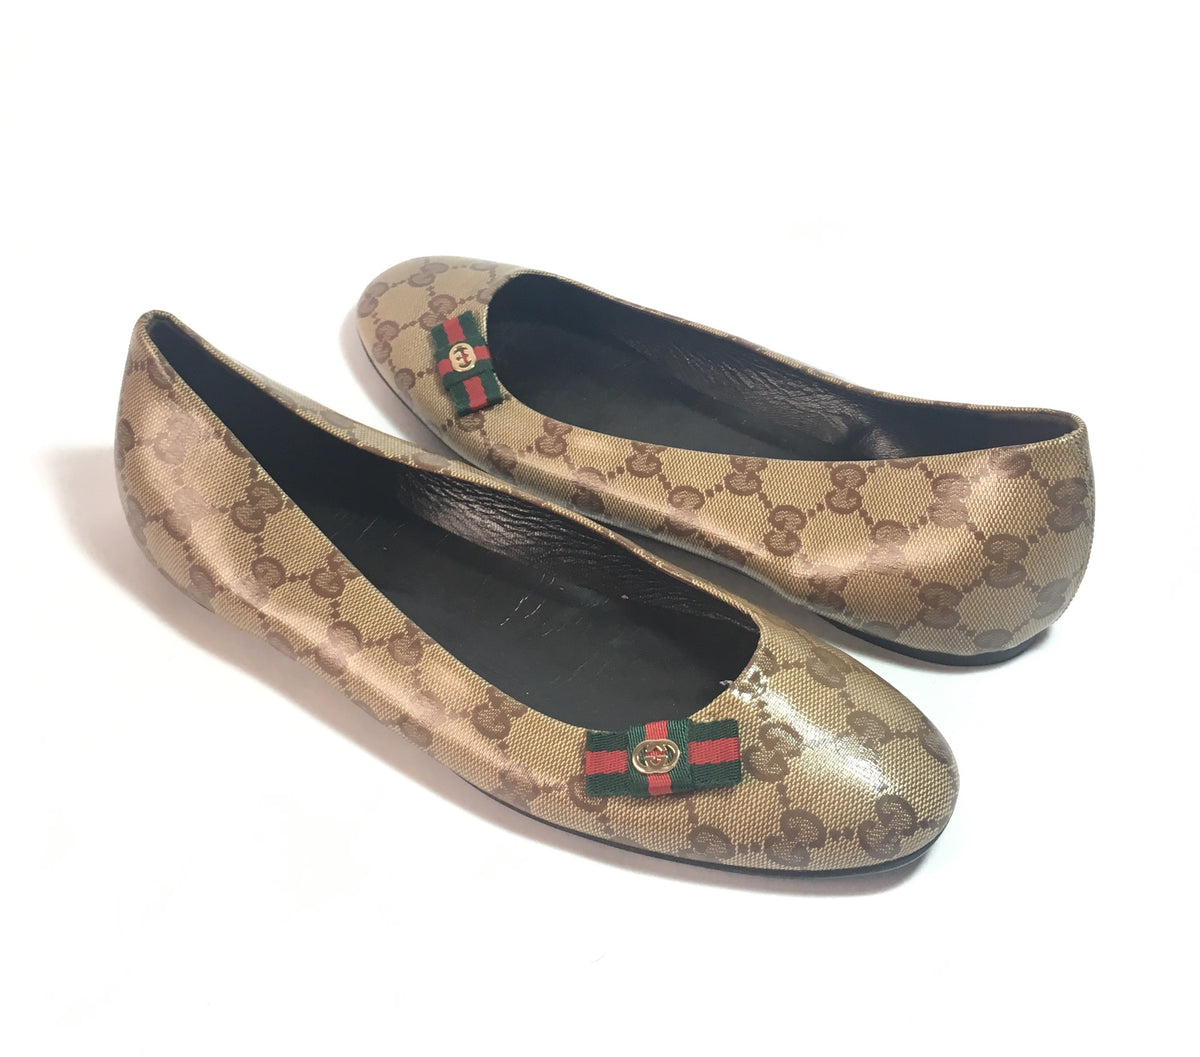 69f9edfe31523 Gucci Monogrammed Coated Canvas Ballet Flats